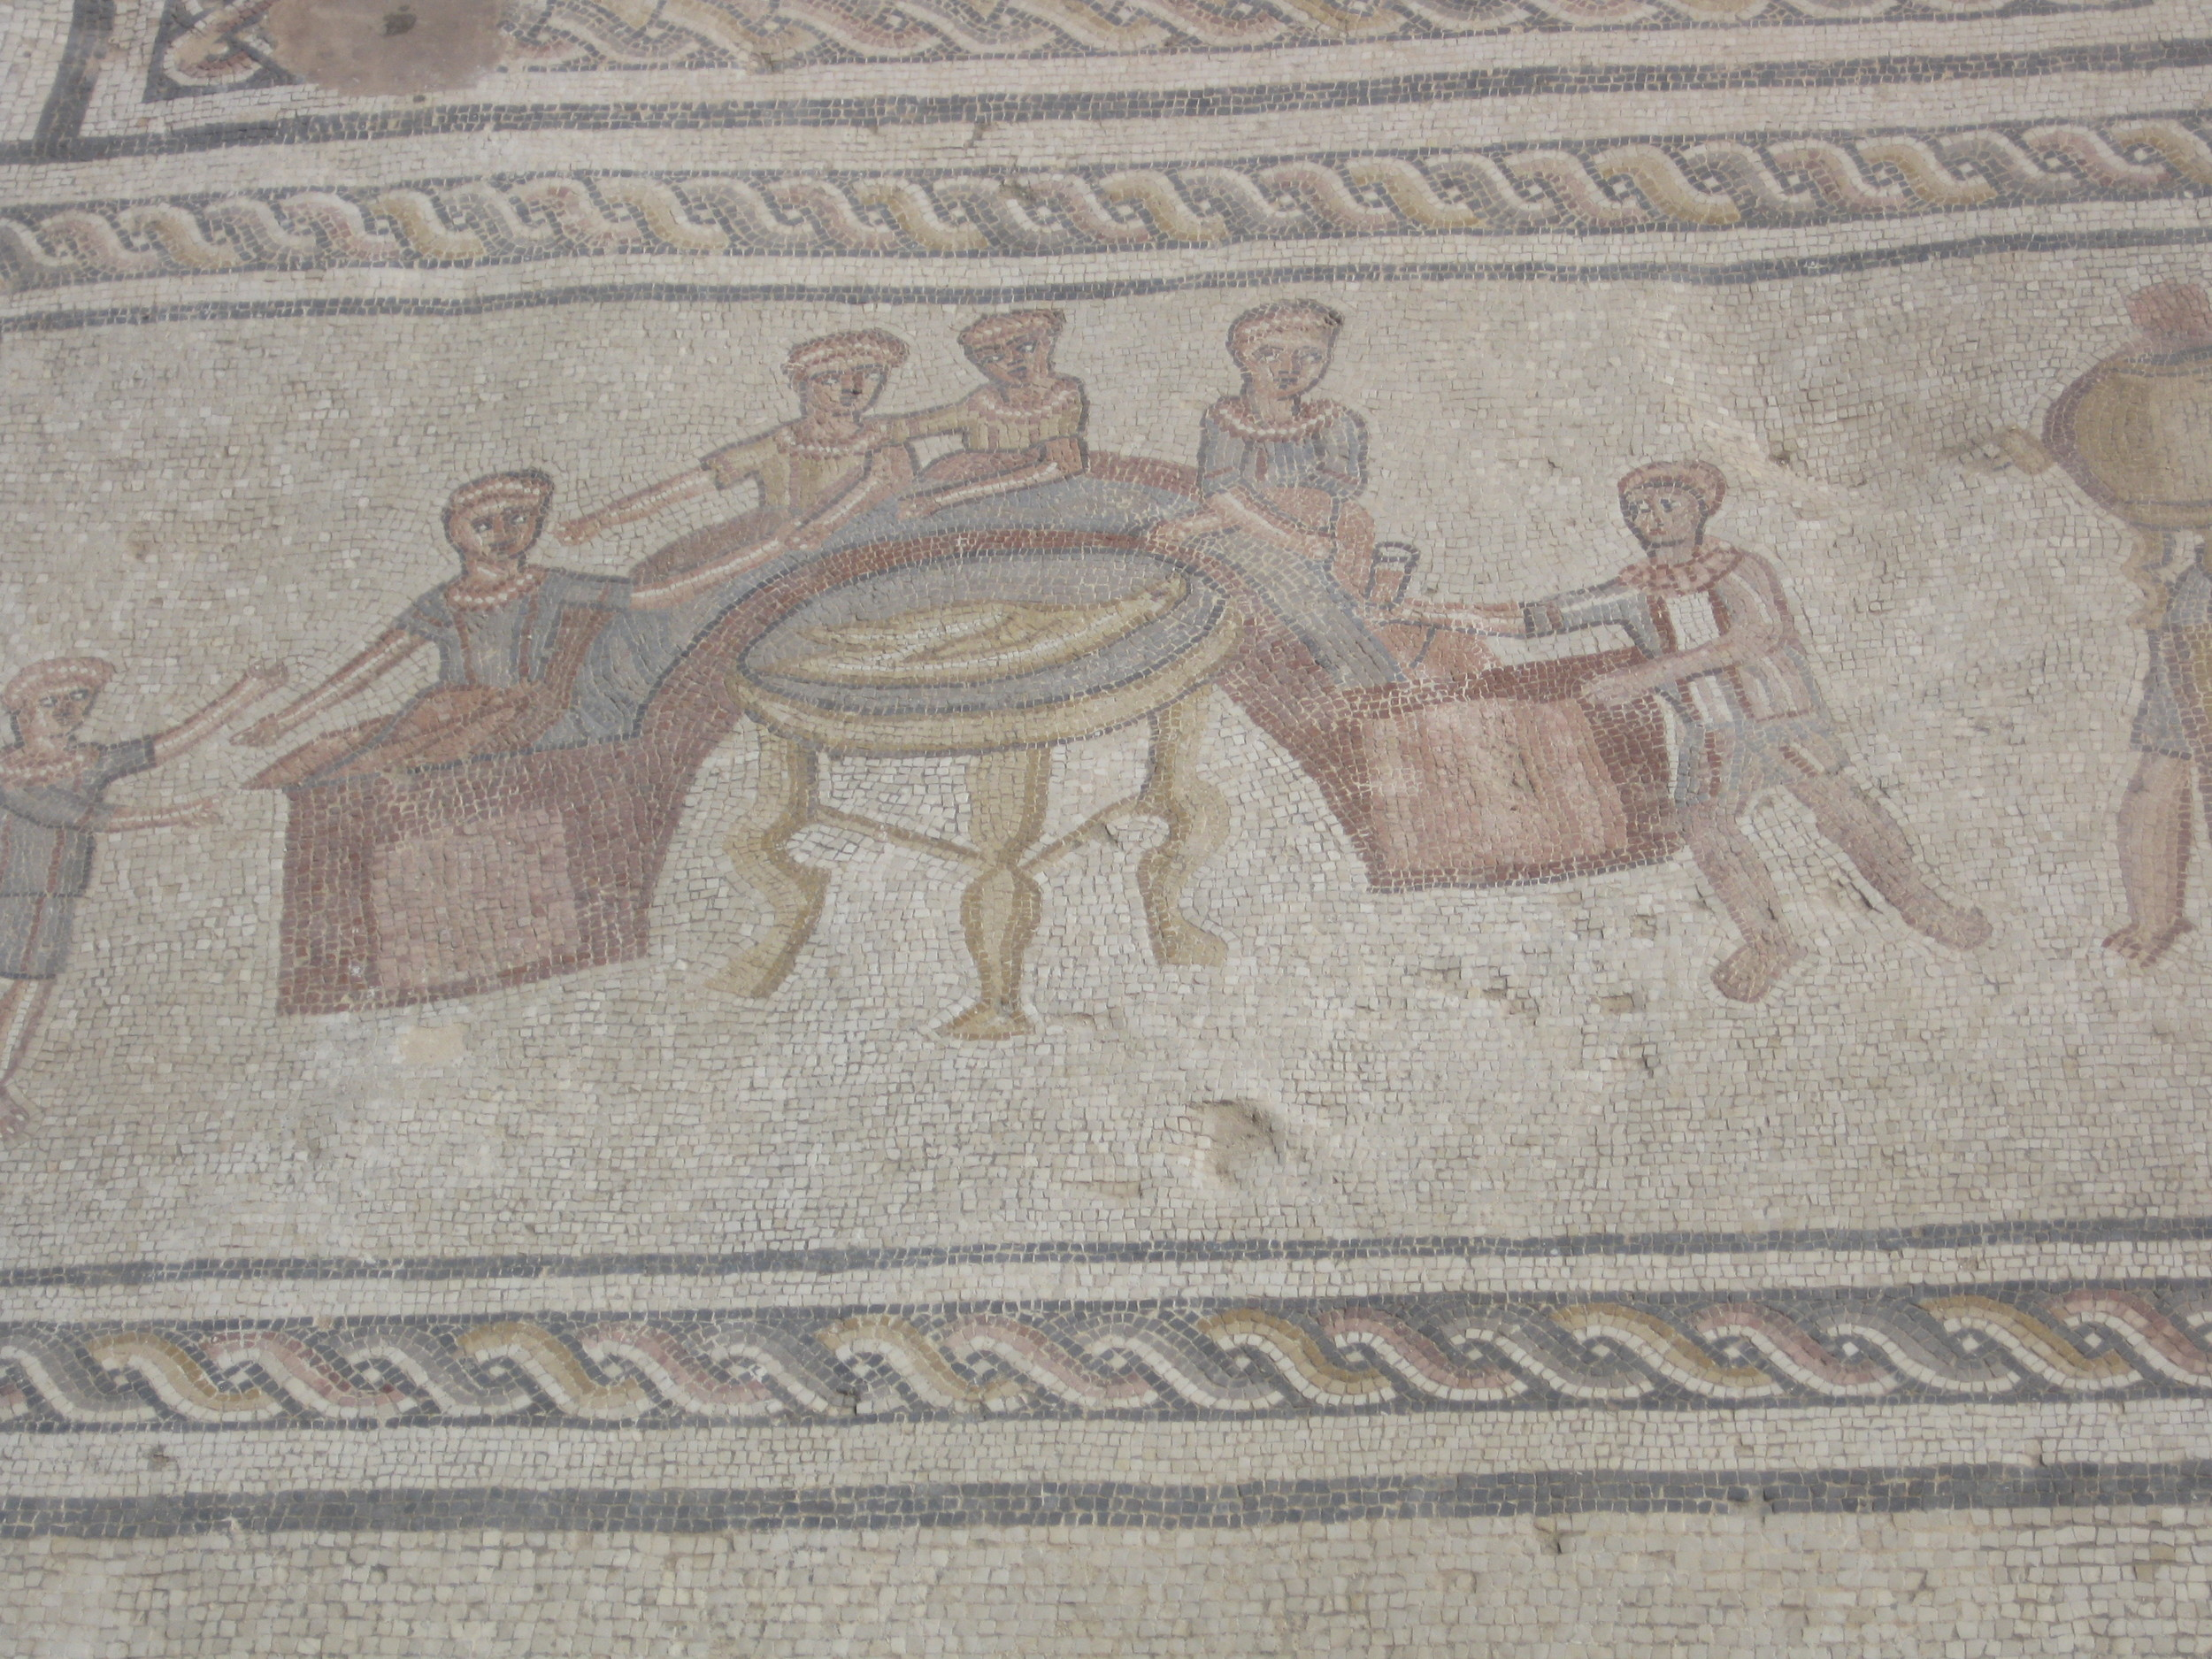 By Ovedc --Stibadium dining in a late antique mosaic from the city of Sepphoris